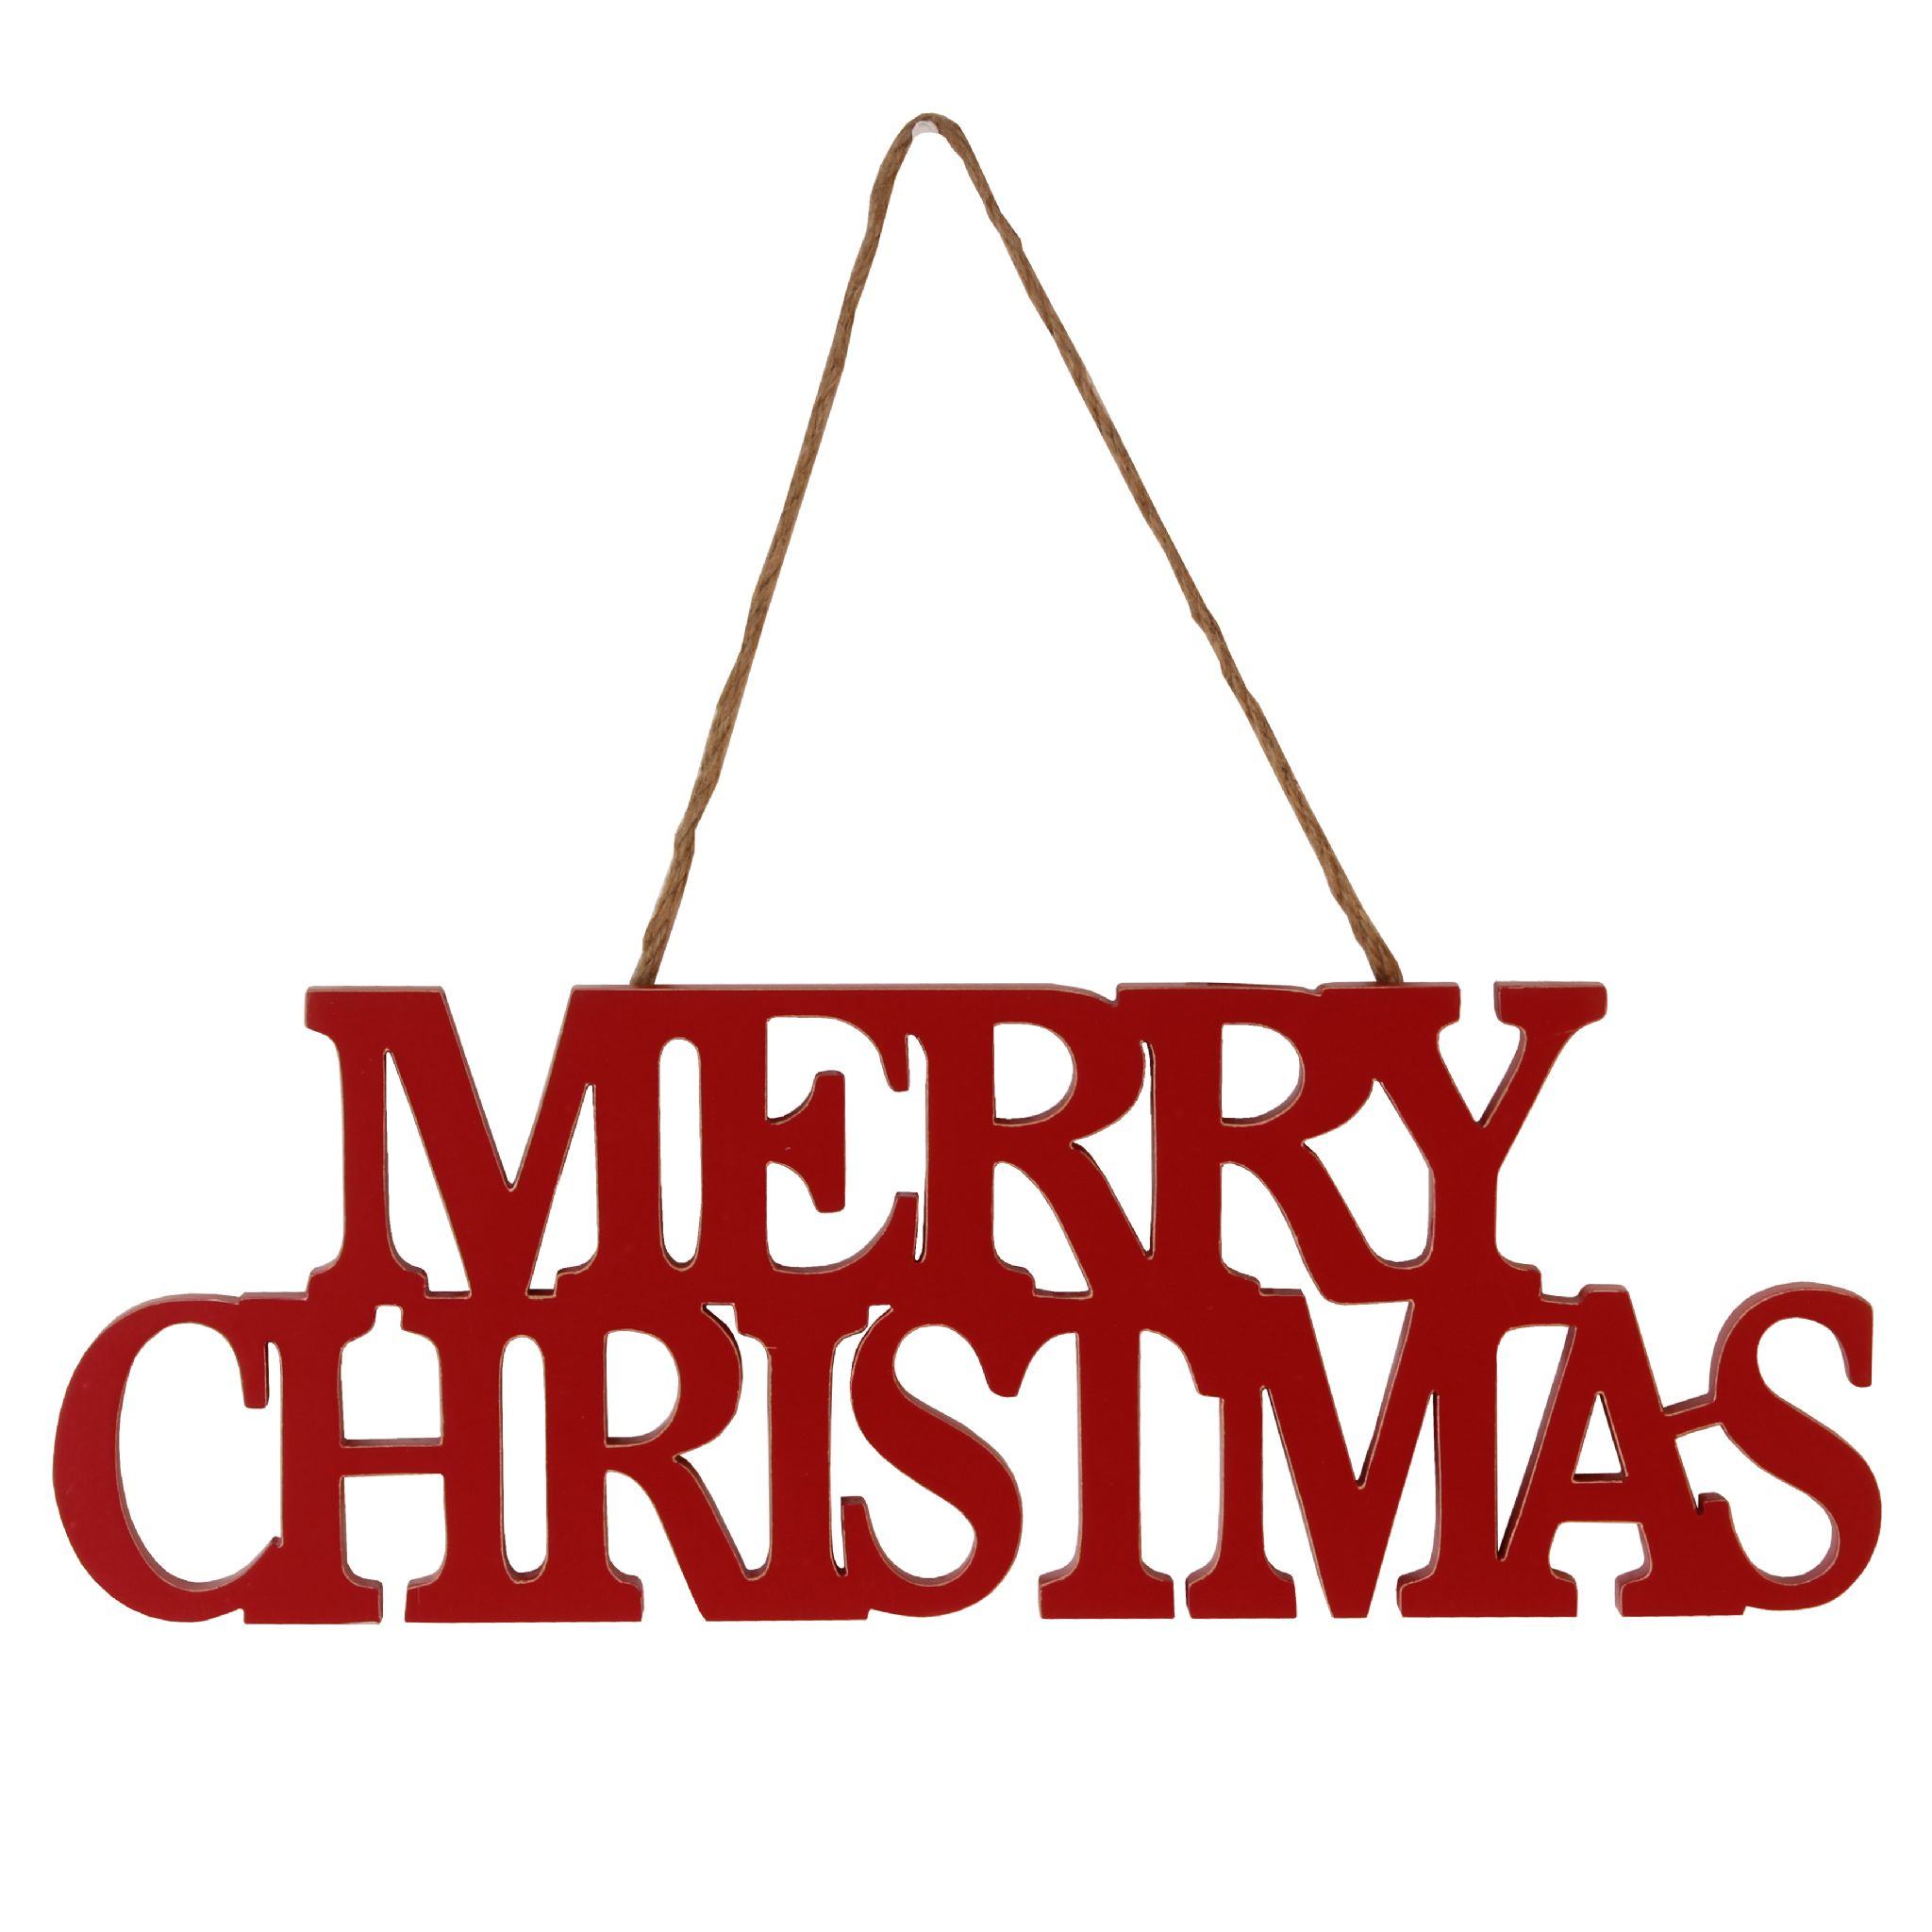 Christmas Sign Decorations: Red Wooden Hanging Merry Christmas Sign